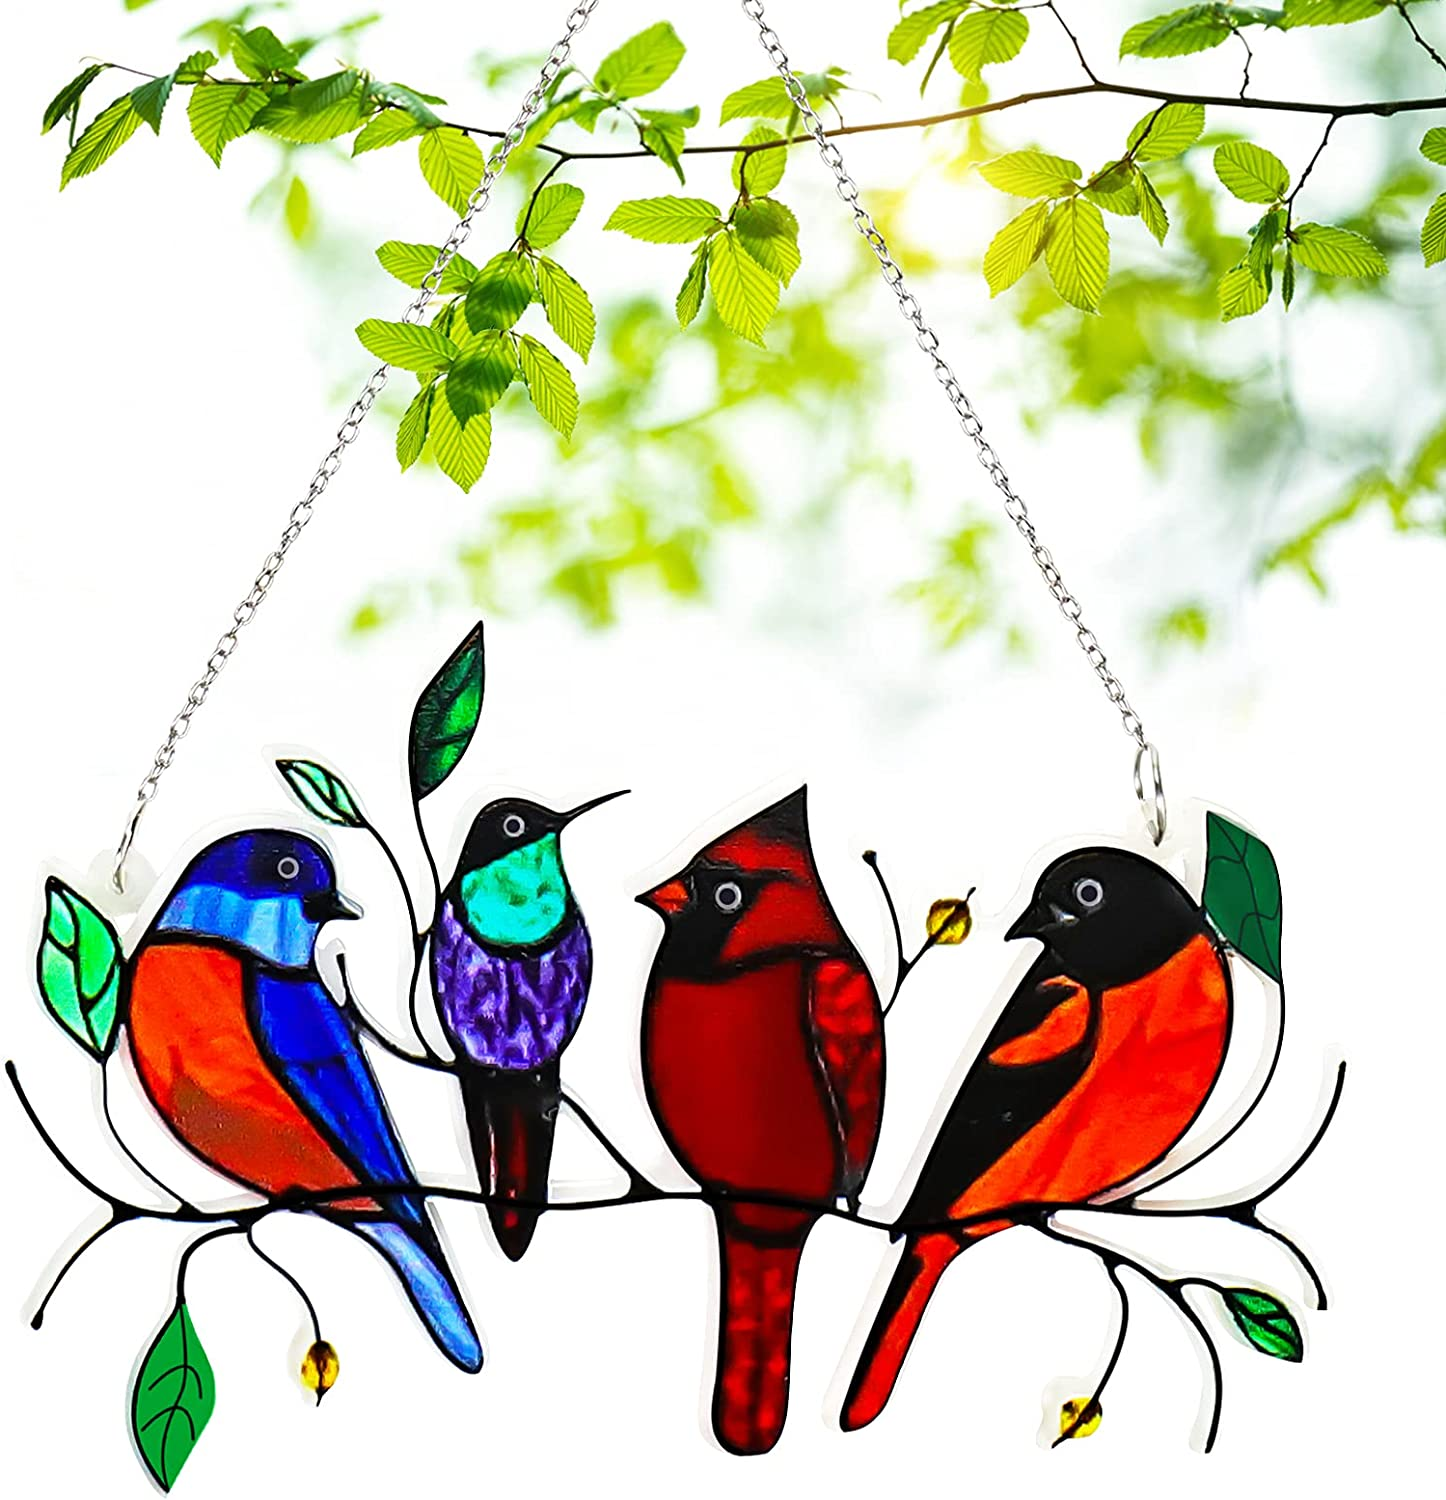 Juome Multicolor Birds on a Wire High Stained Glass Suncatcher Window Hangings, 4 Birds Pendant Ornaments for Windows/Doors/Garden/Home Spring Decorations